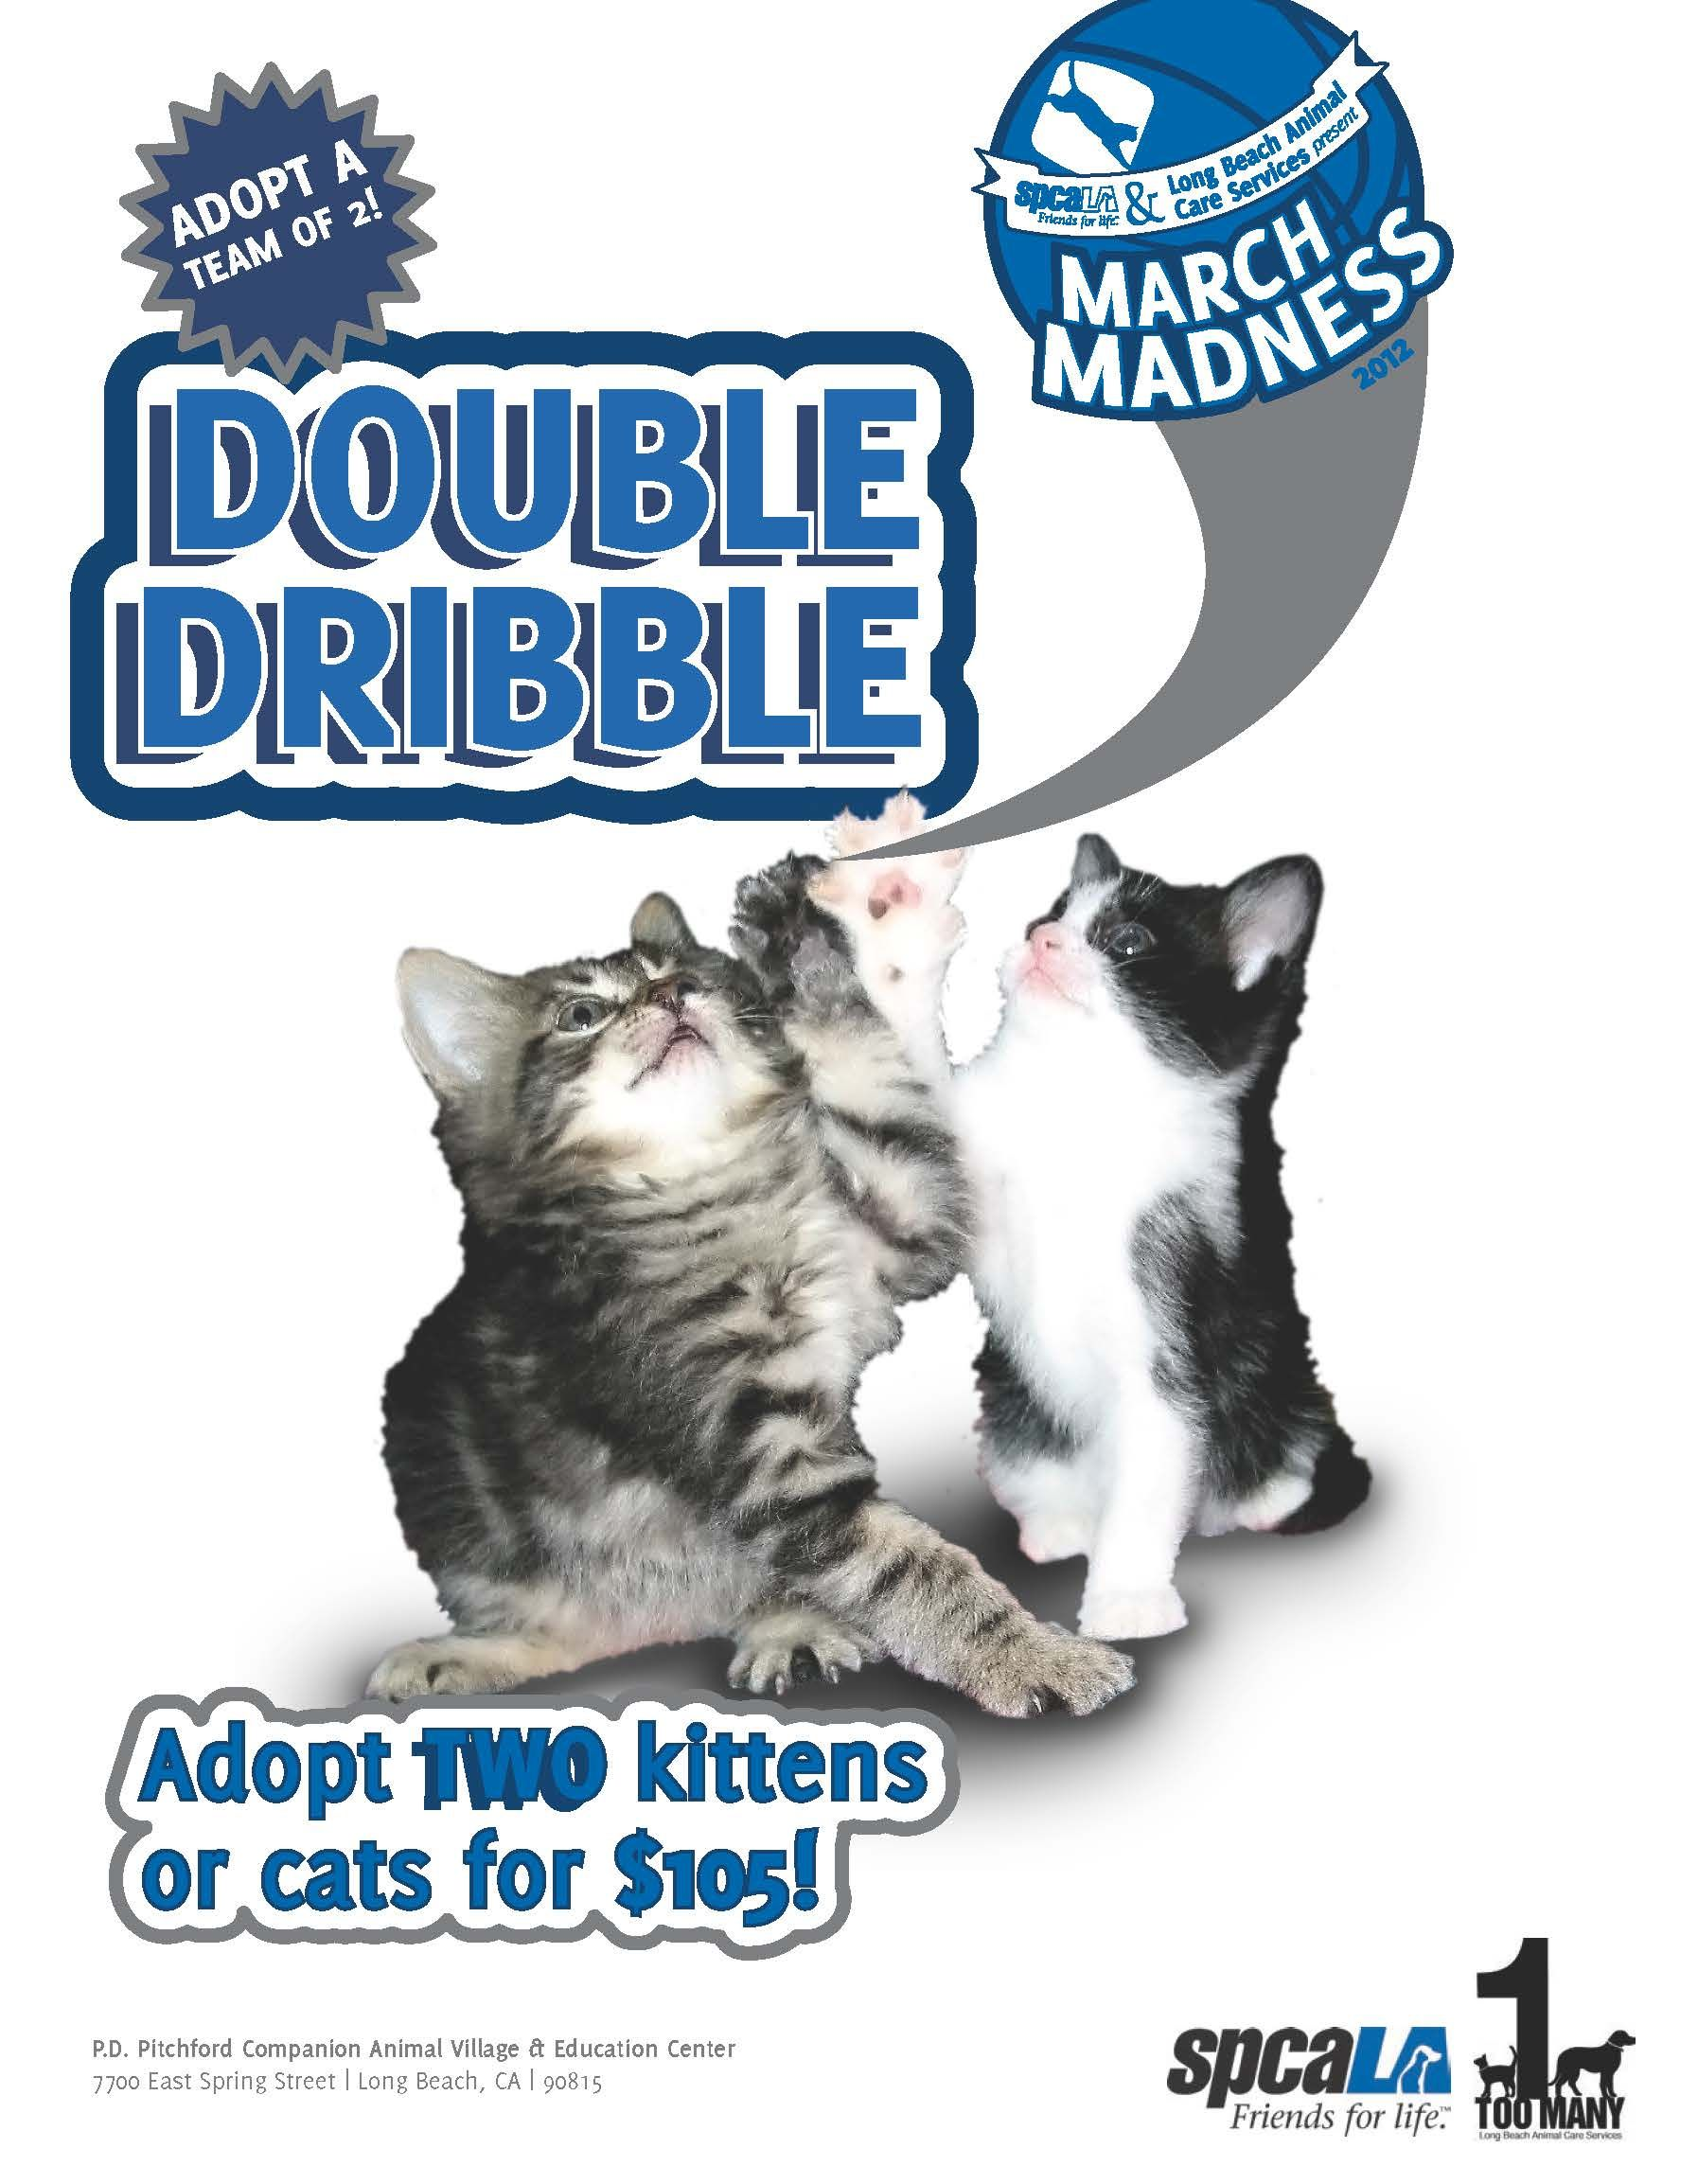 March Madness! During the month of March, adopt a team of